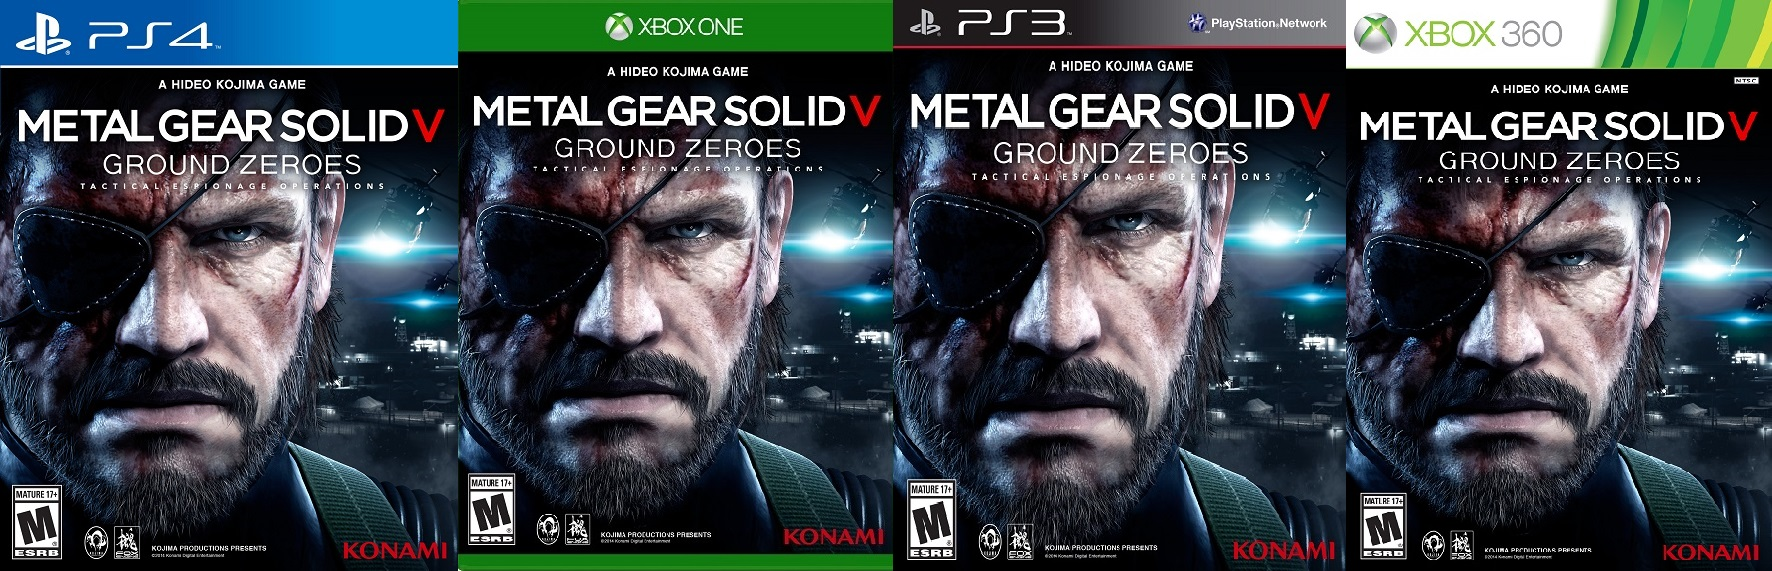 MGS_V_Ground_Zeroes_-_Covers.jpg